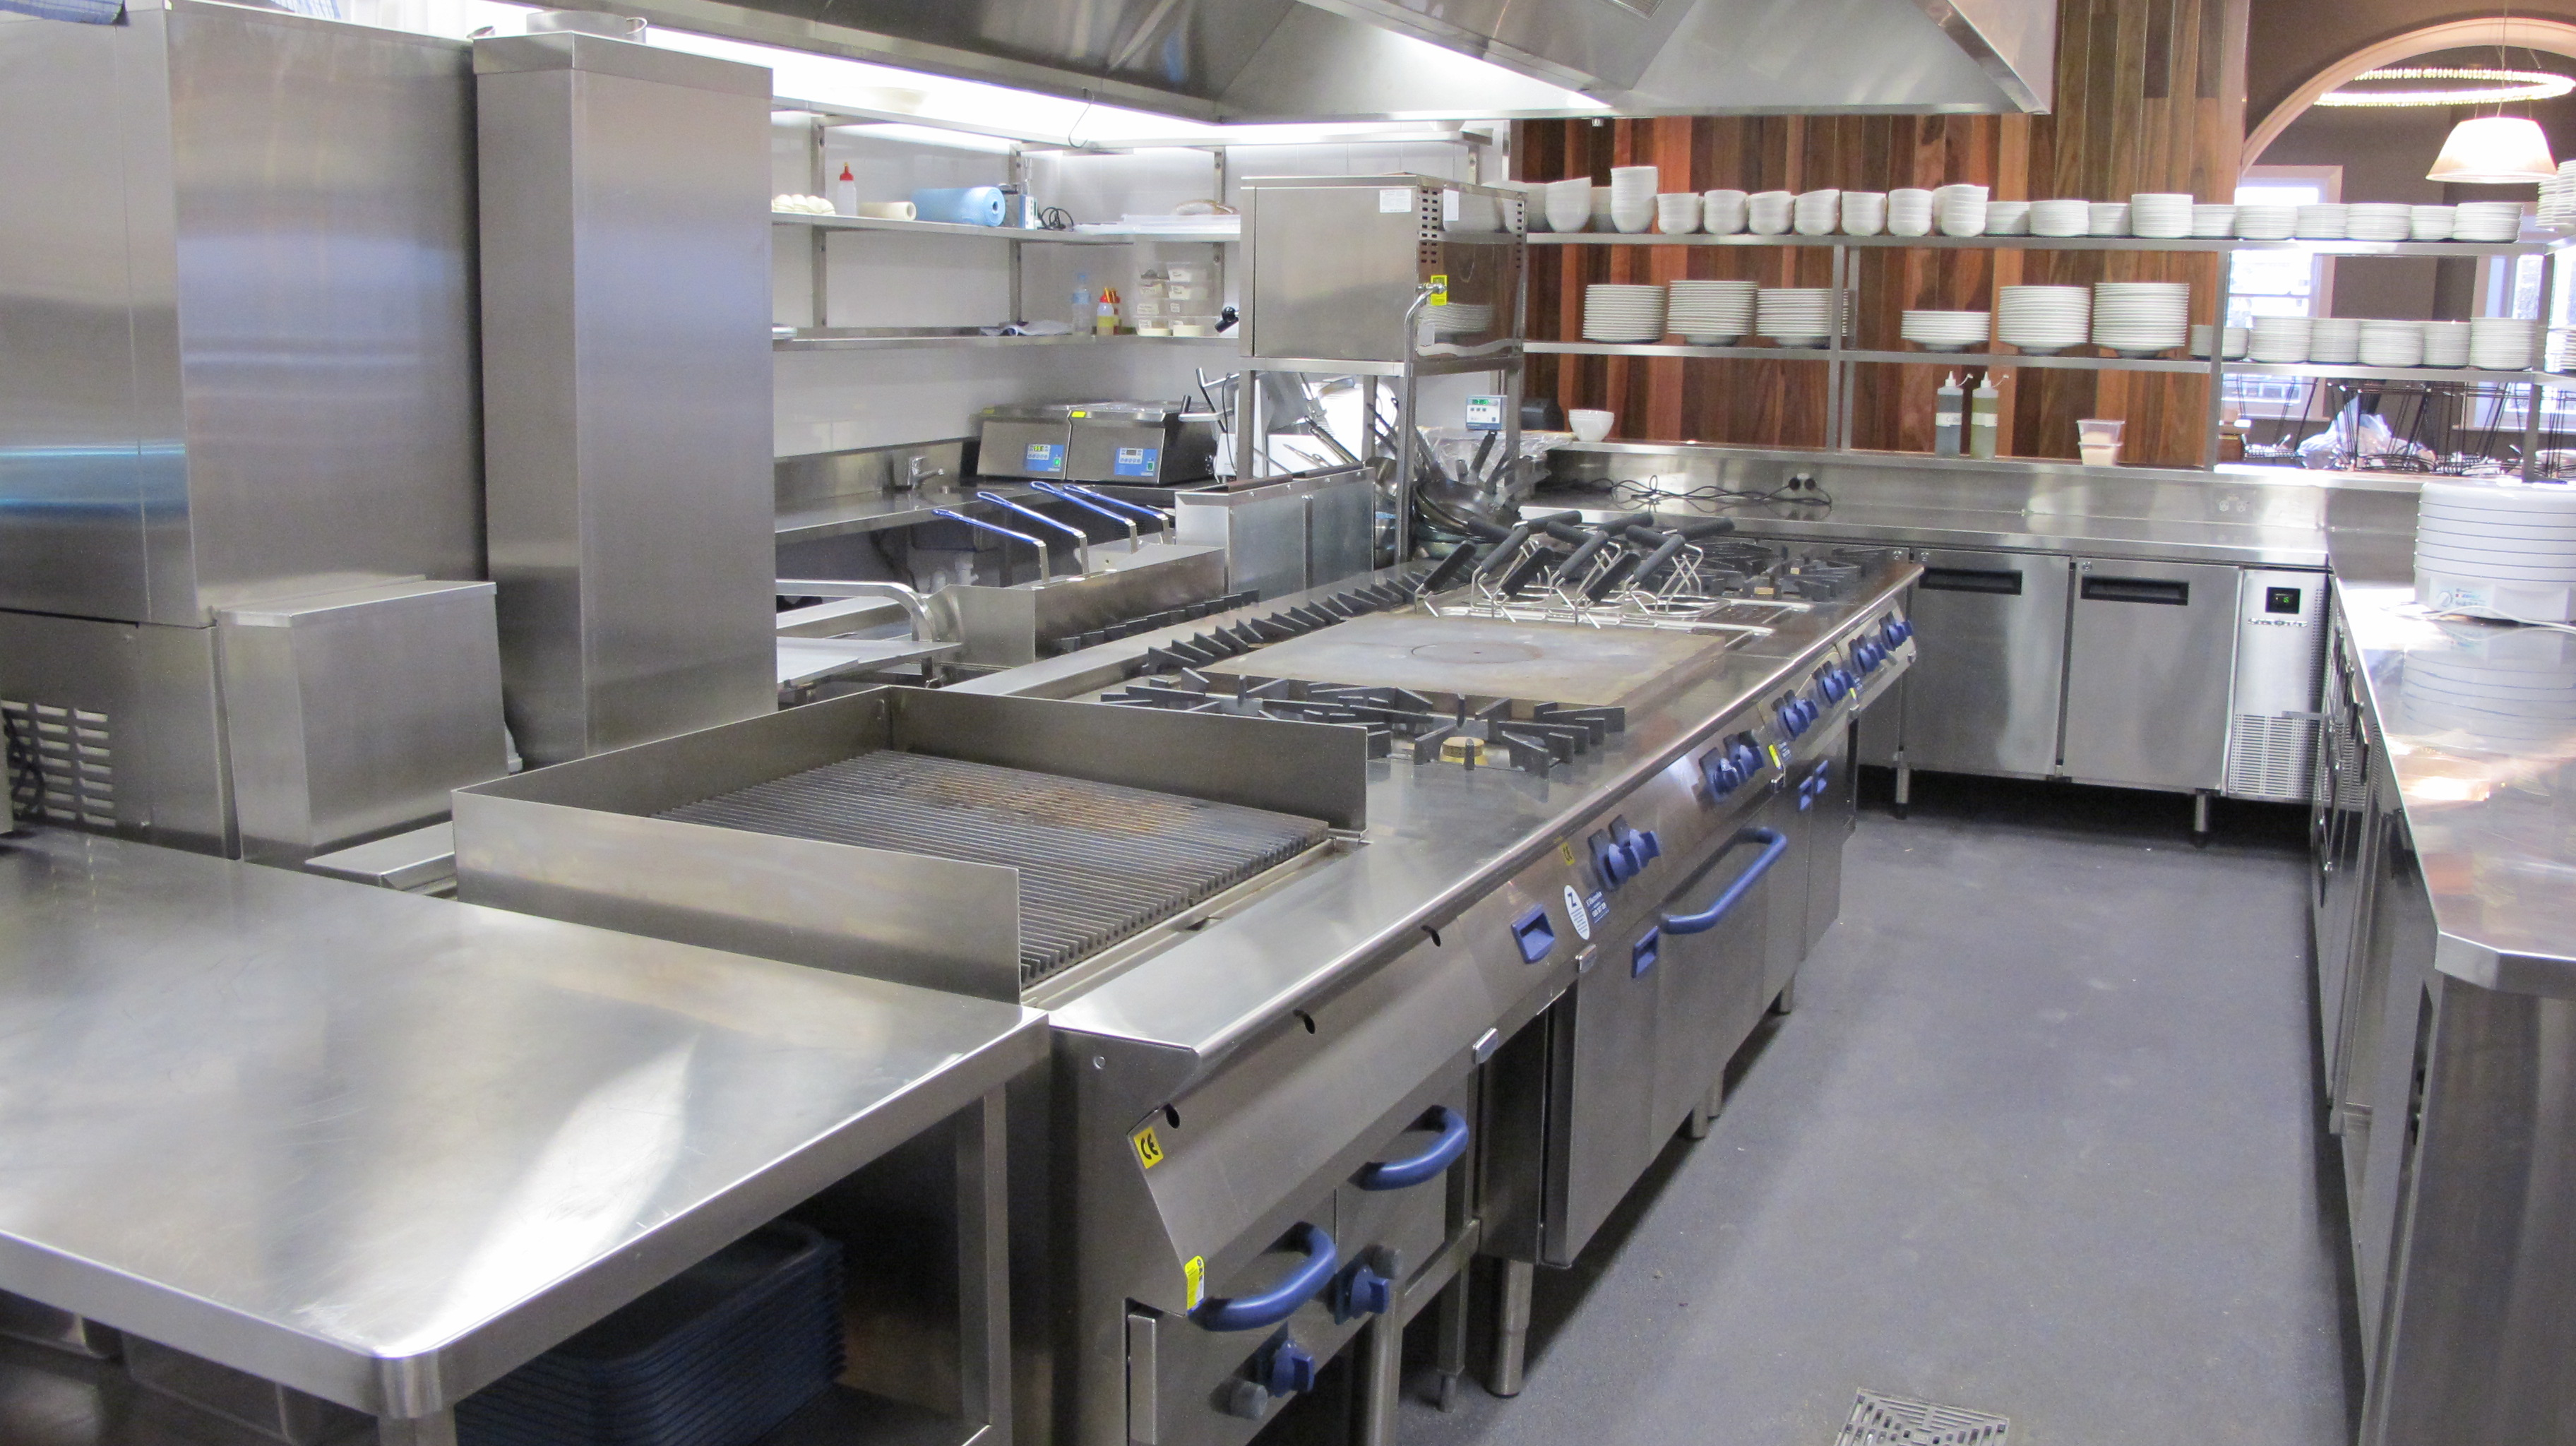 Commercial Catering Kitchen Design Commercial Kitchen Design With Commercial  Catering Kitchen Design